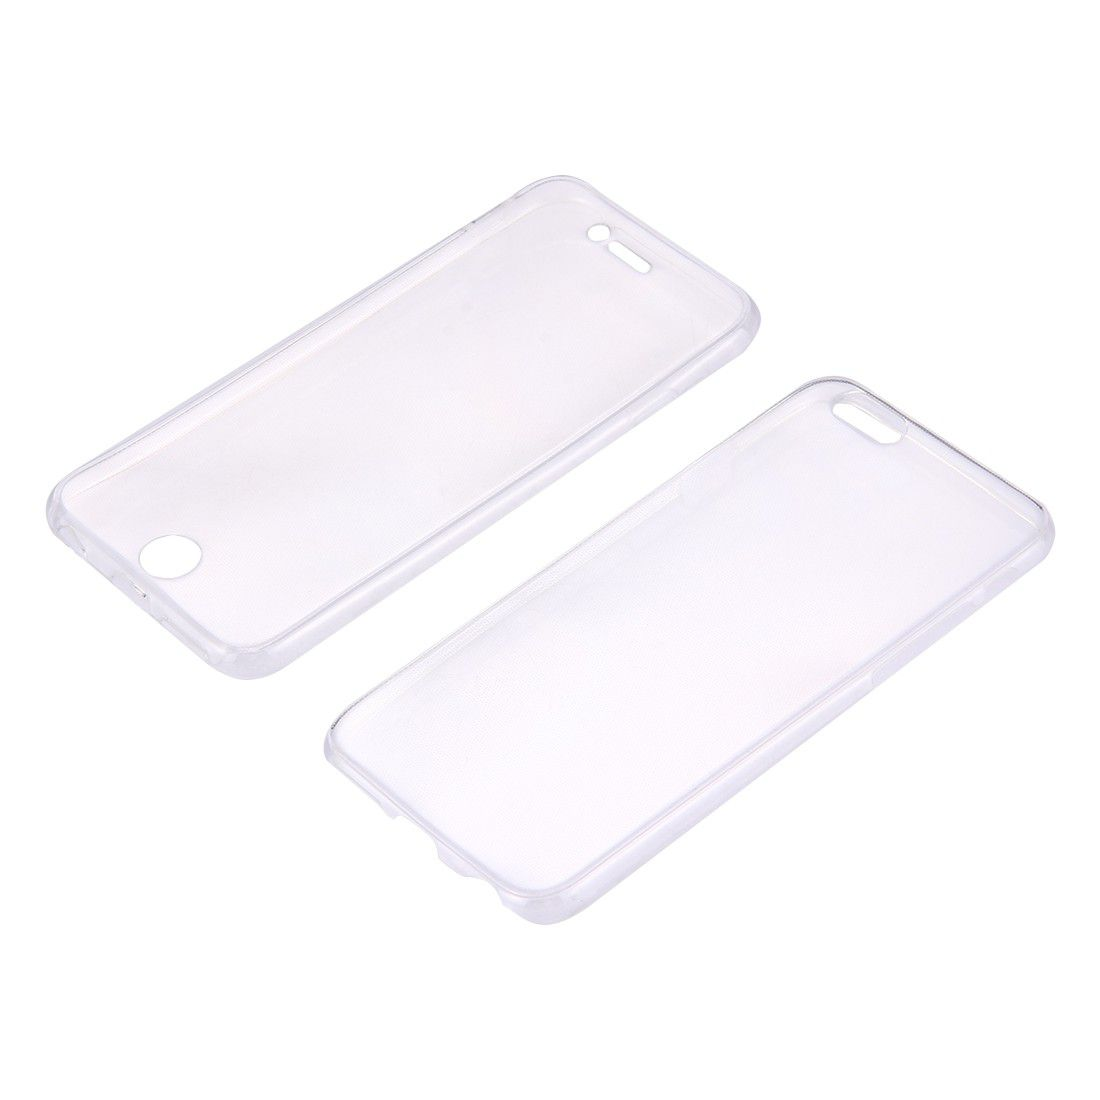 iphone 6 double sided case under 3